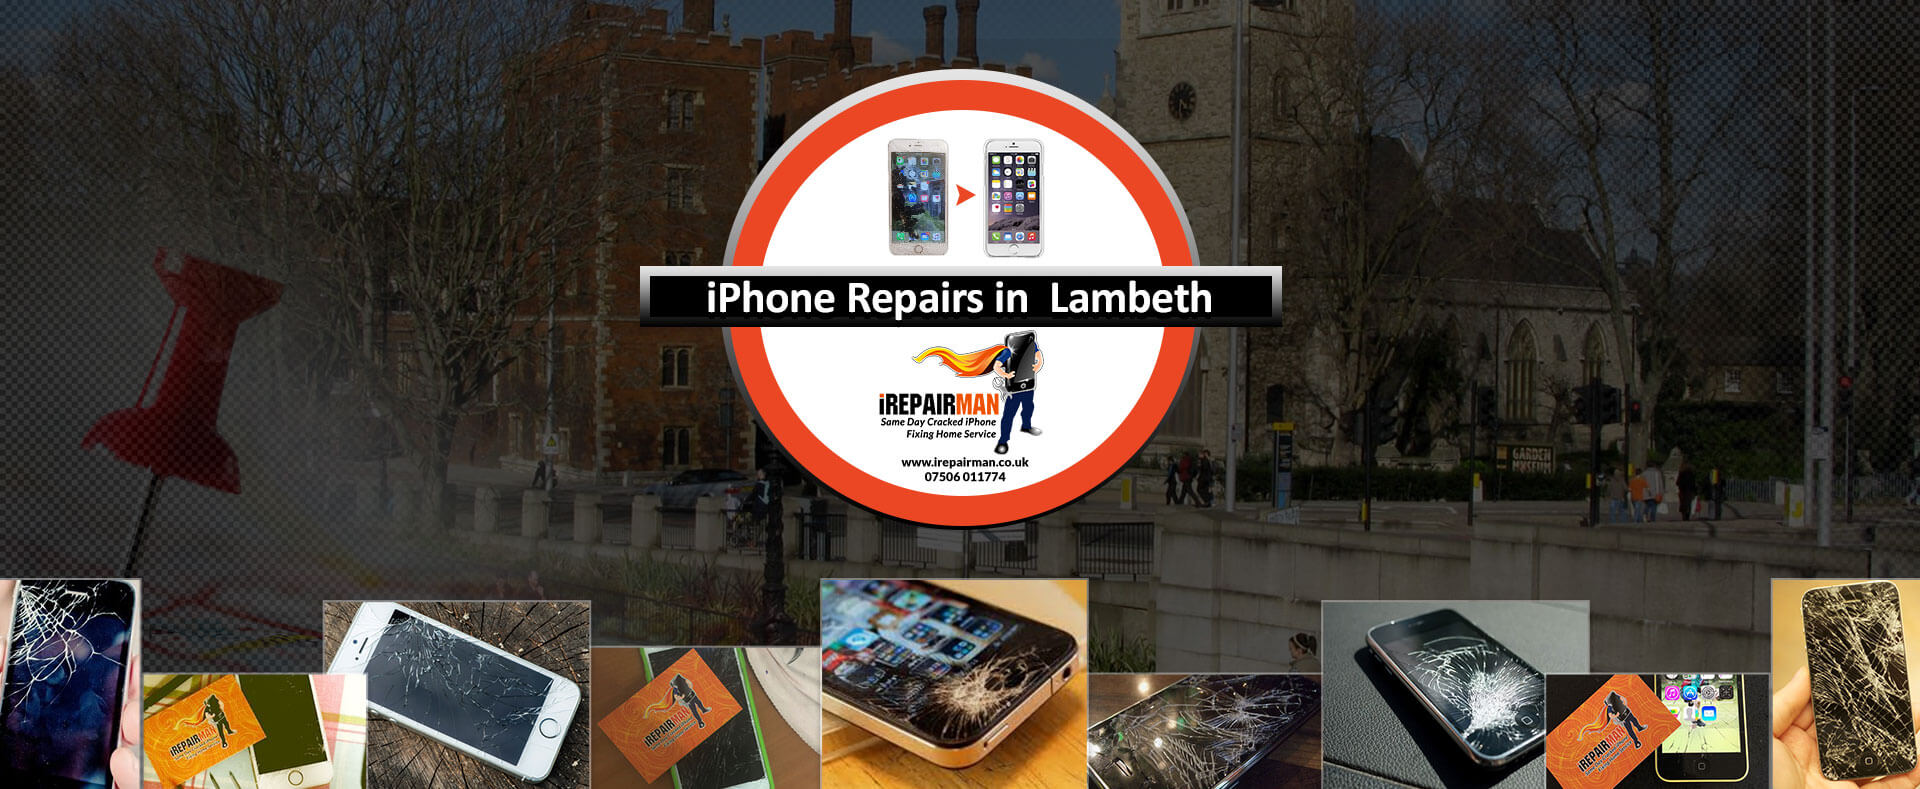 iPhone Repairs in Lambeth